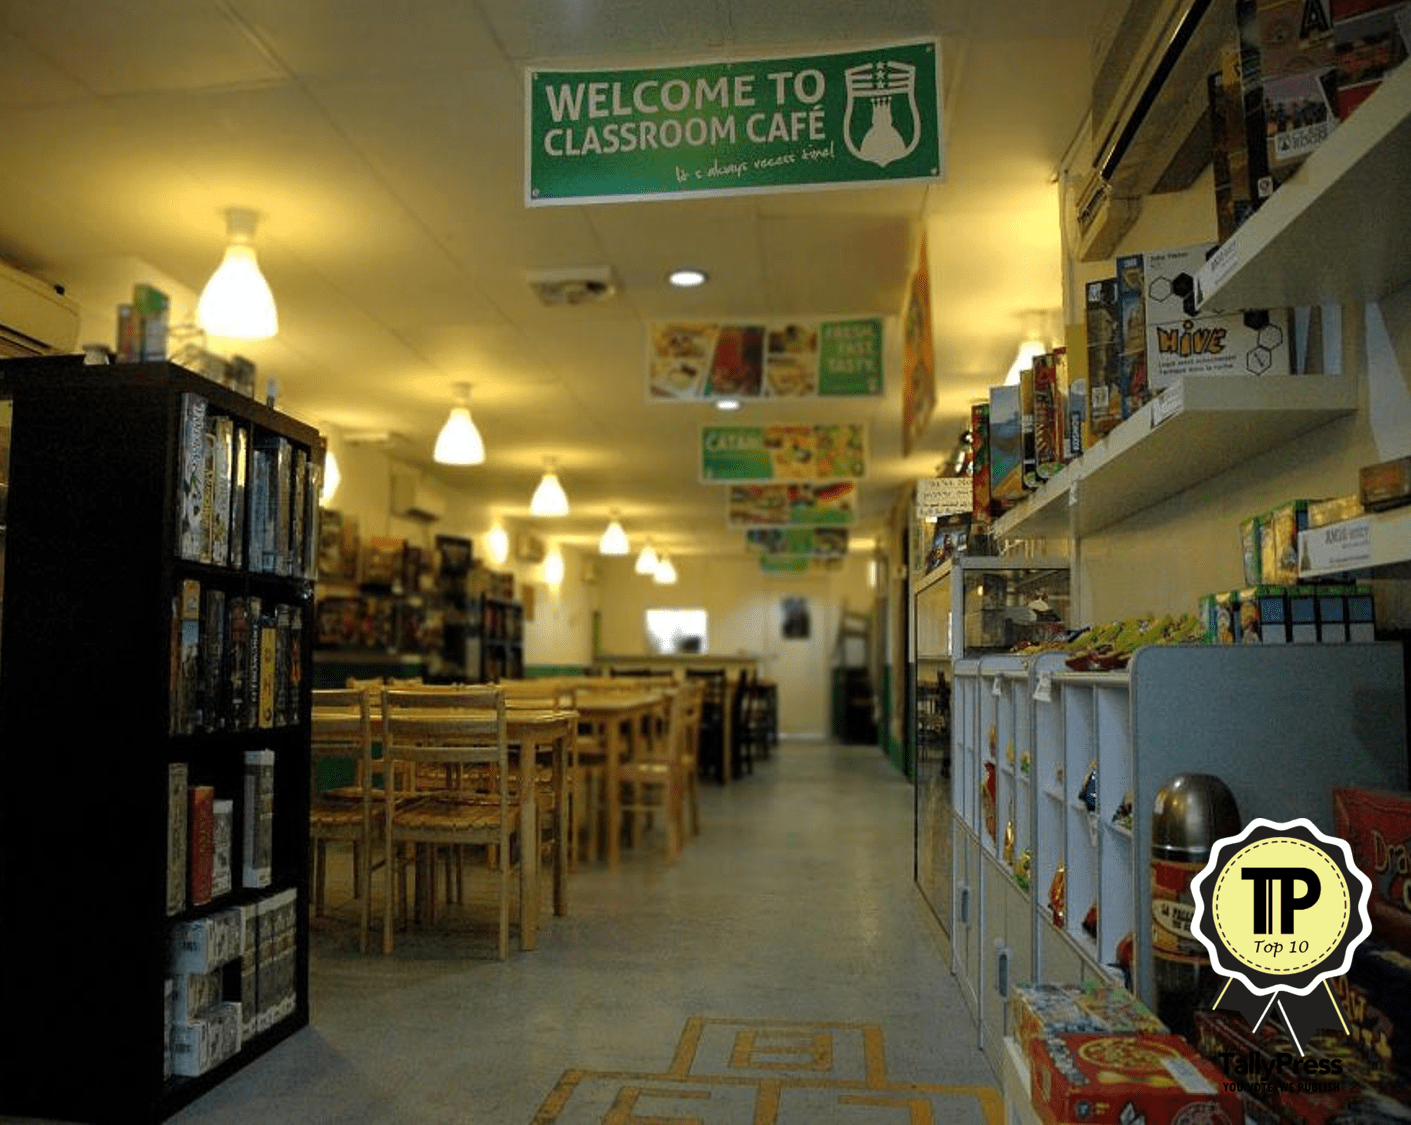 malaysias-top-10-board-game-cafes-classroom-cafe